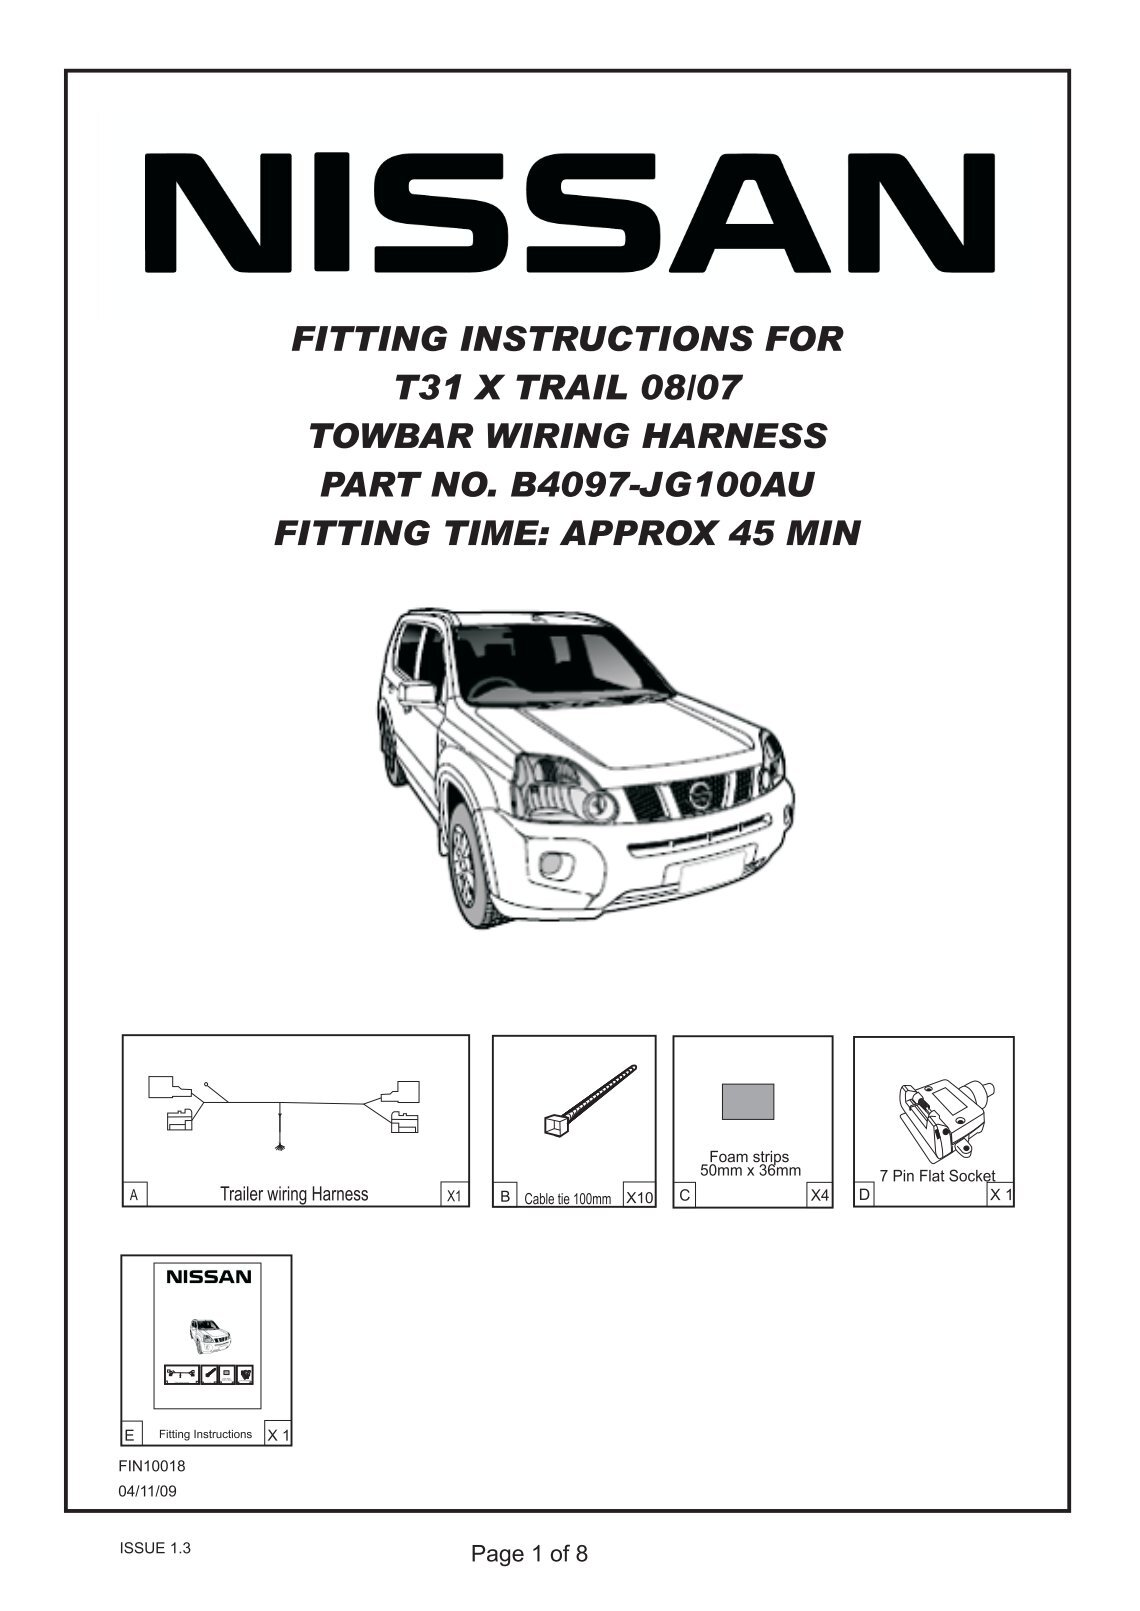 fitting instructions for nissan t31 x trail towbar wiring harness nissan x trail towbar wiring diagram nissan wiring diagram gallery nissan x trail tow bar wiring diagram at creativeand.co